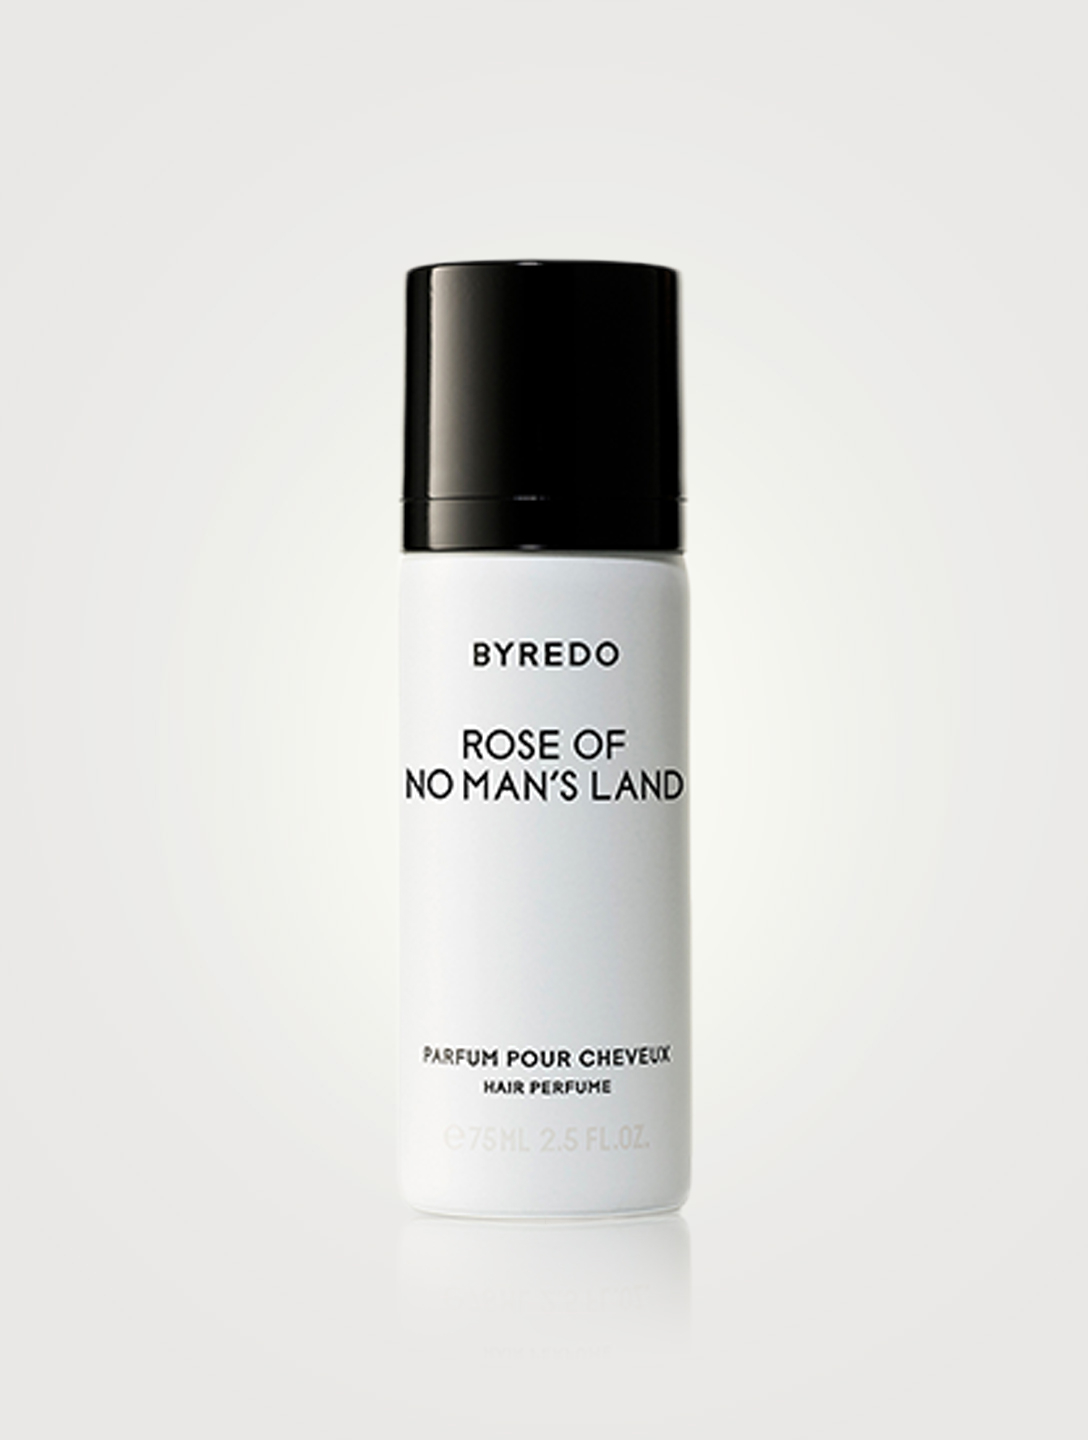 BYREDO Rose of No Man's Land Hair Perfume Designers